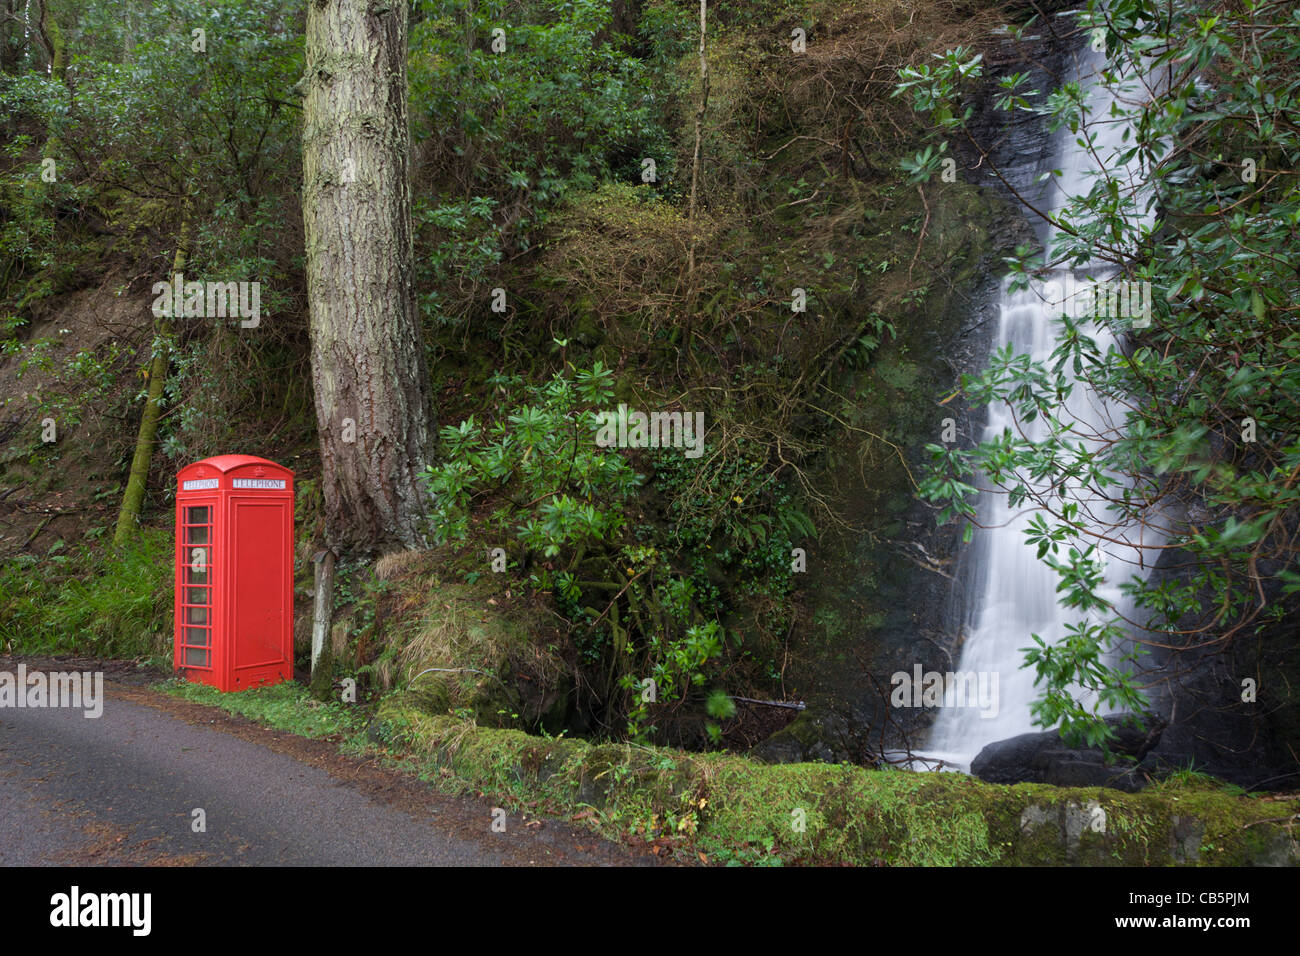 Phone box featured in movie 'I know where I'm Going' at Carsaig Bay, Isle of Mull, Scotland. - Stock Image